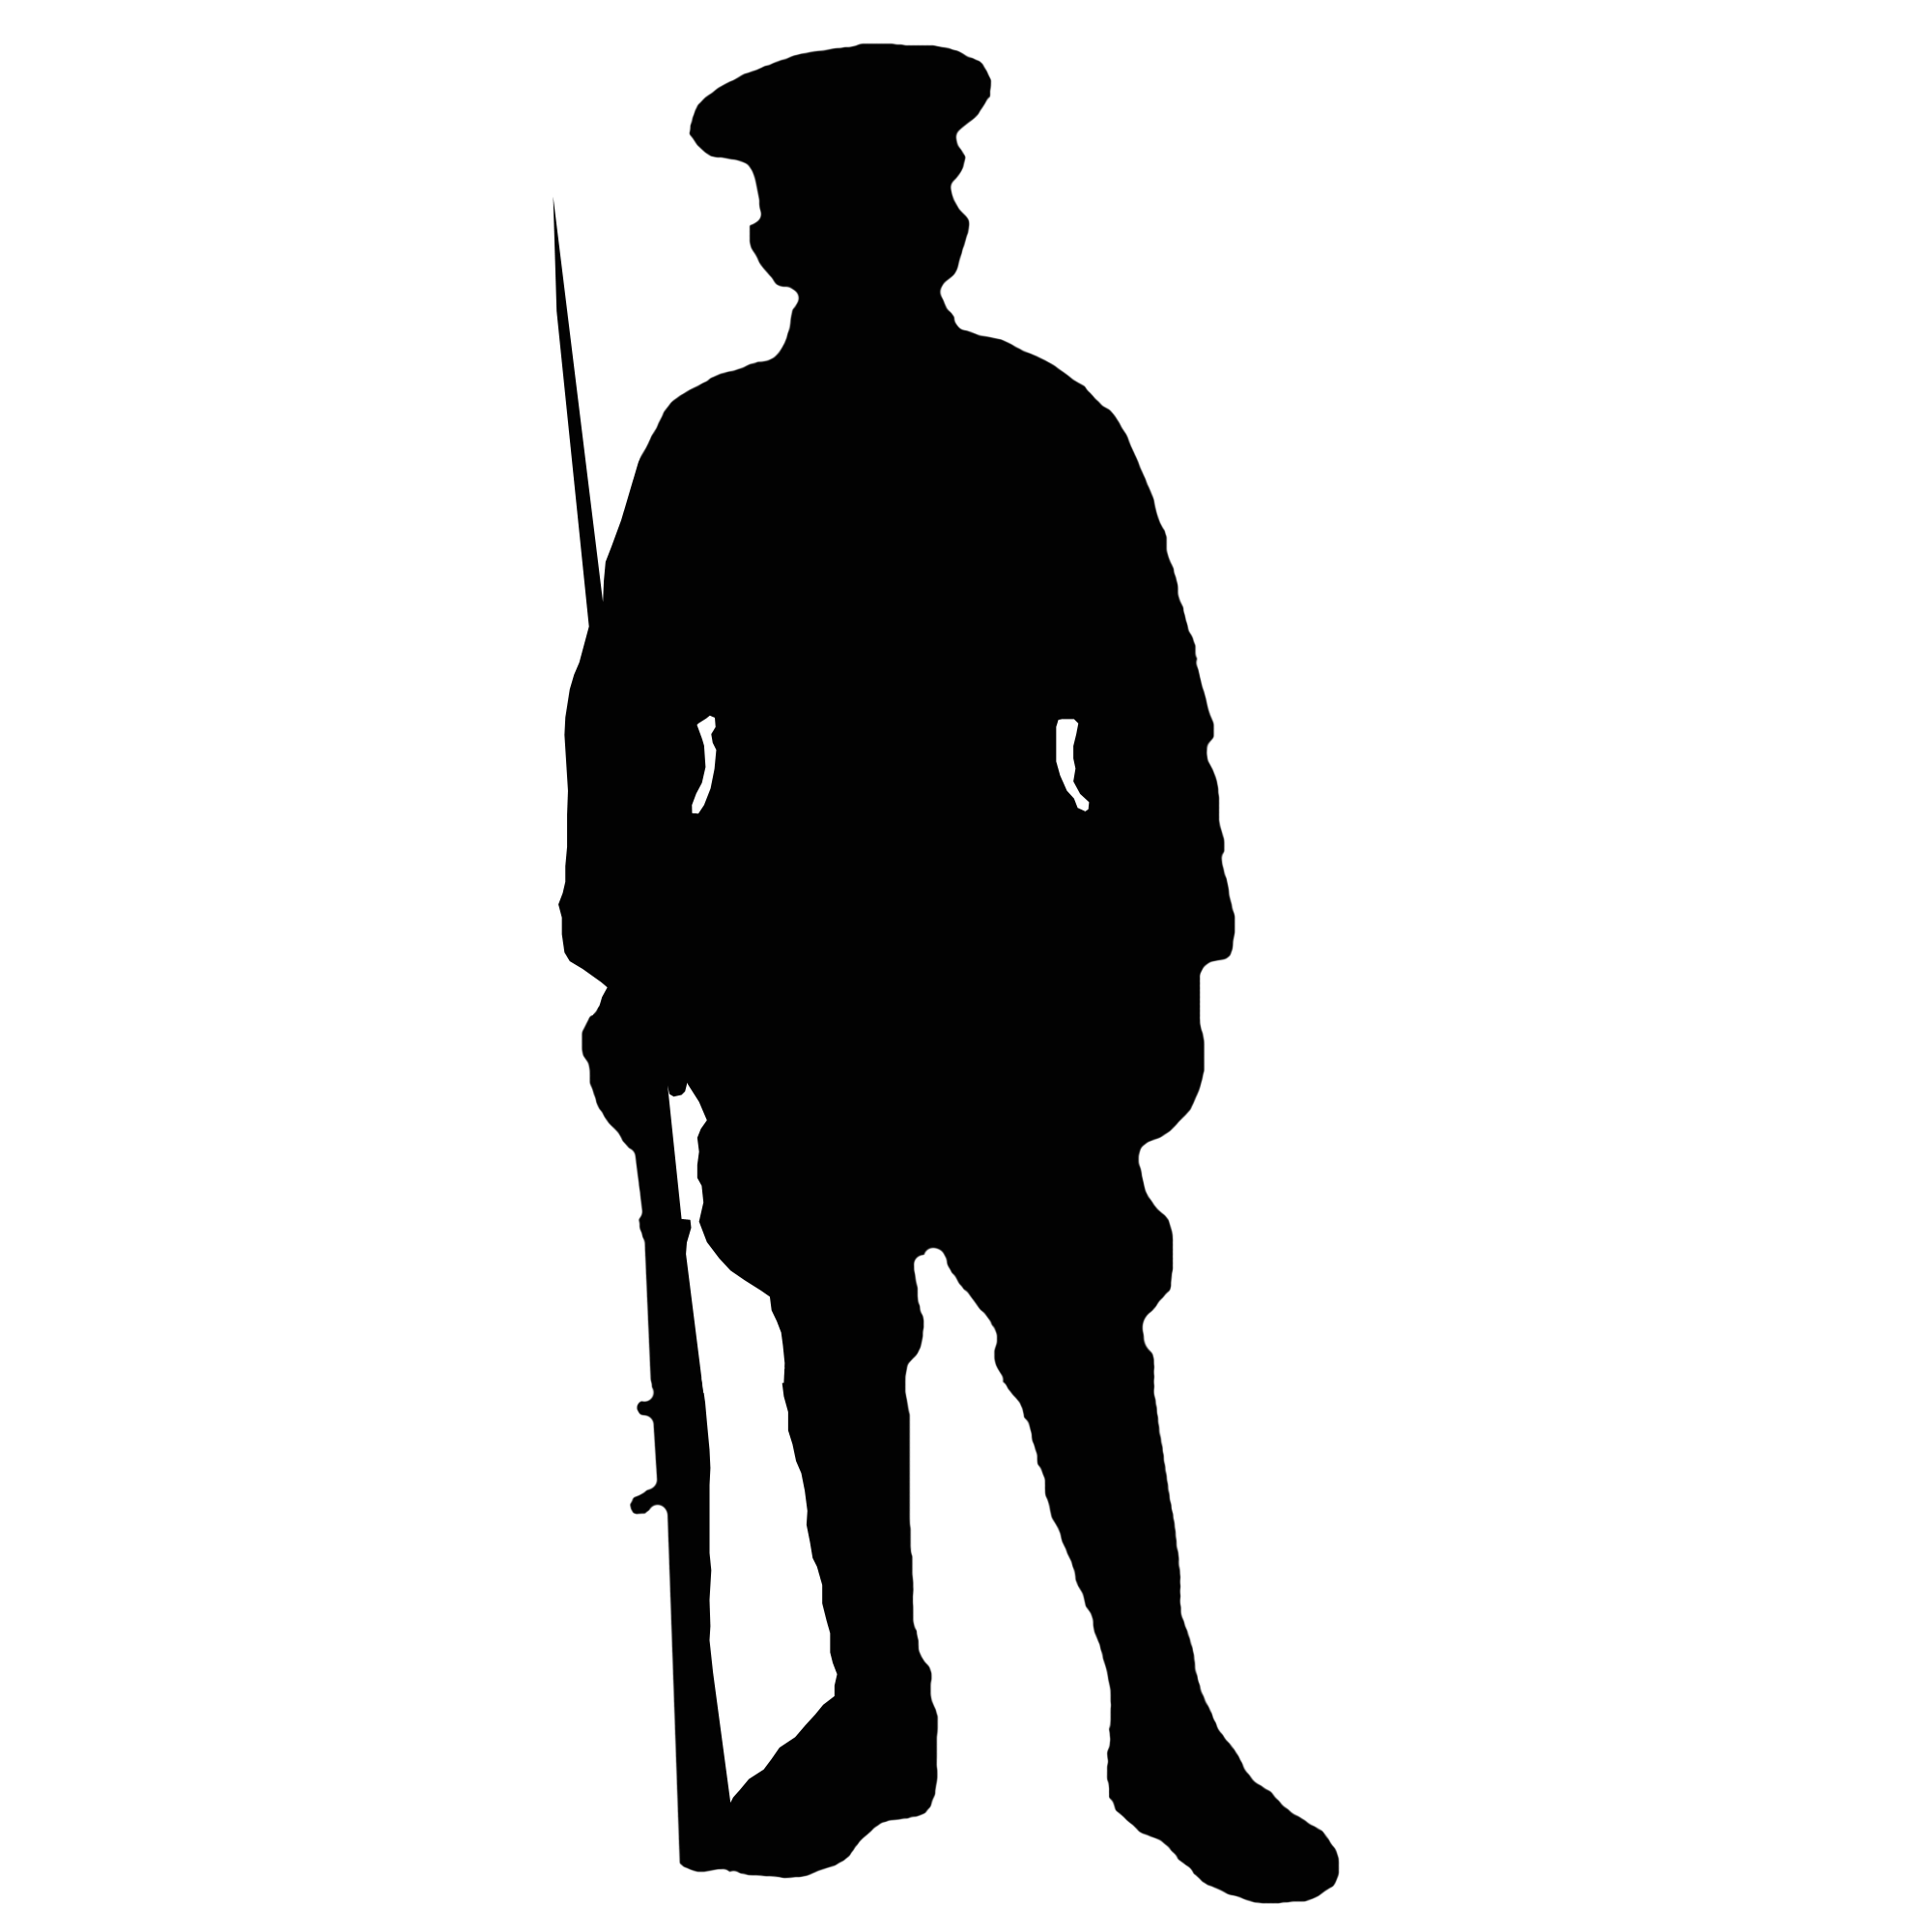 world war 1 soldier silhouette at getdrawings com free for